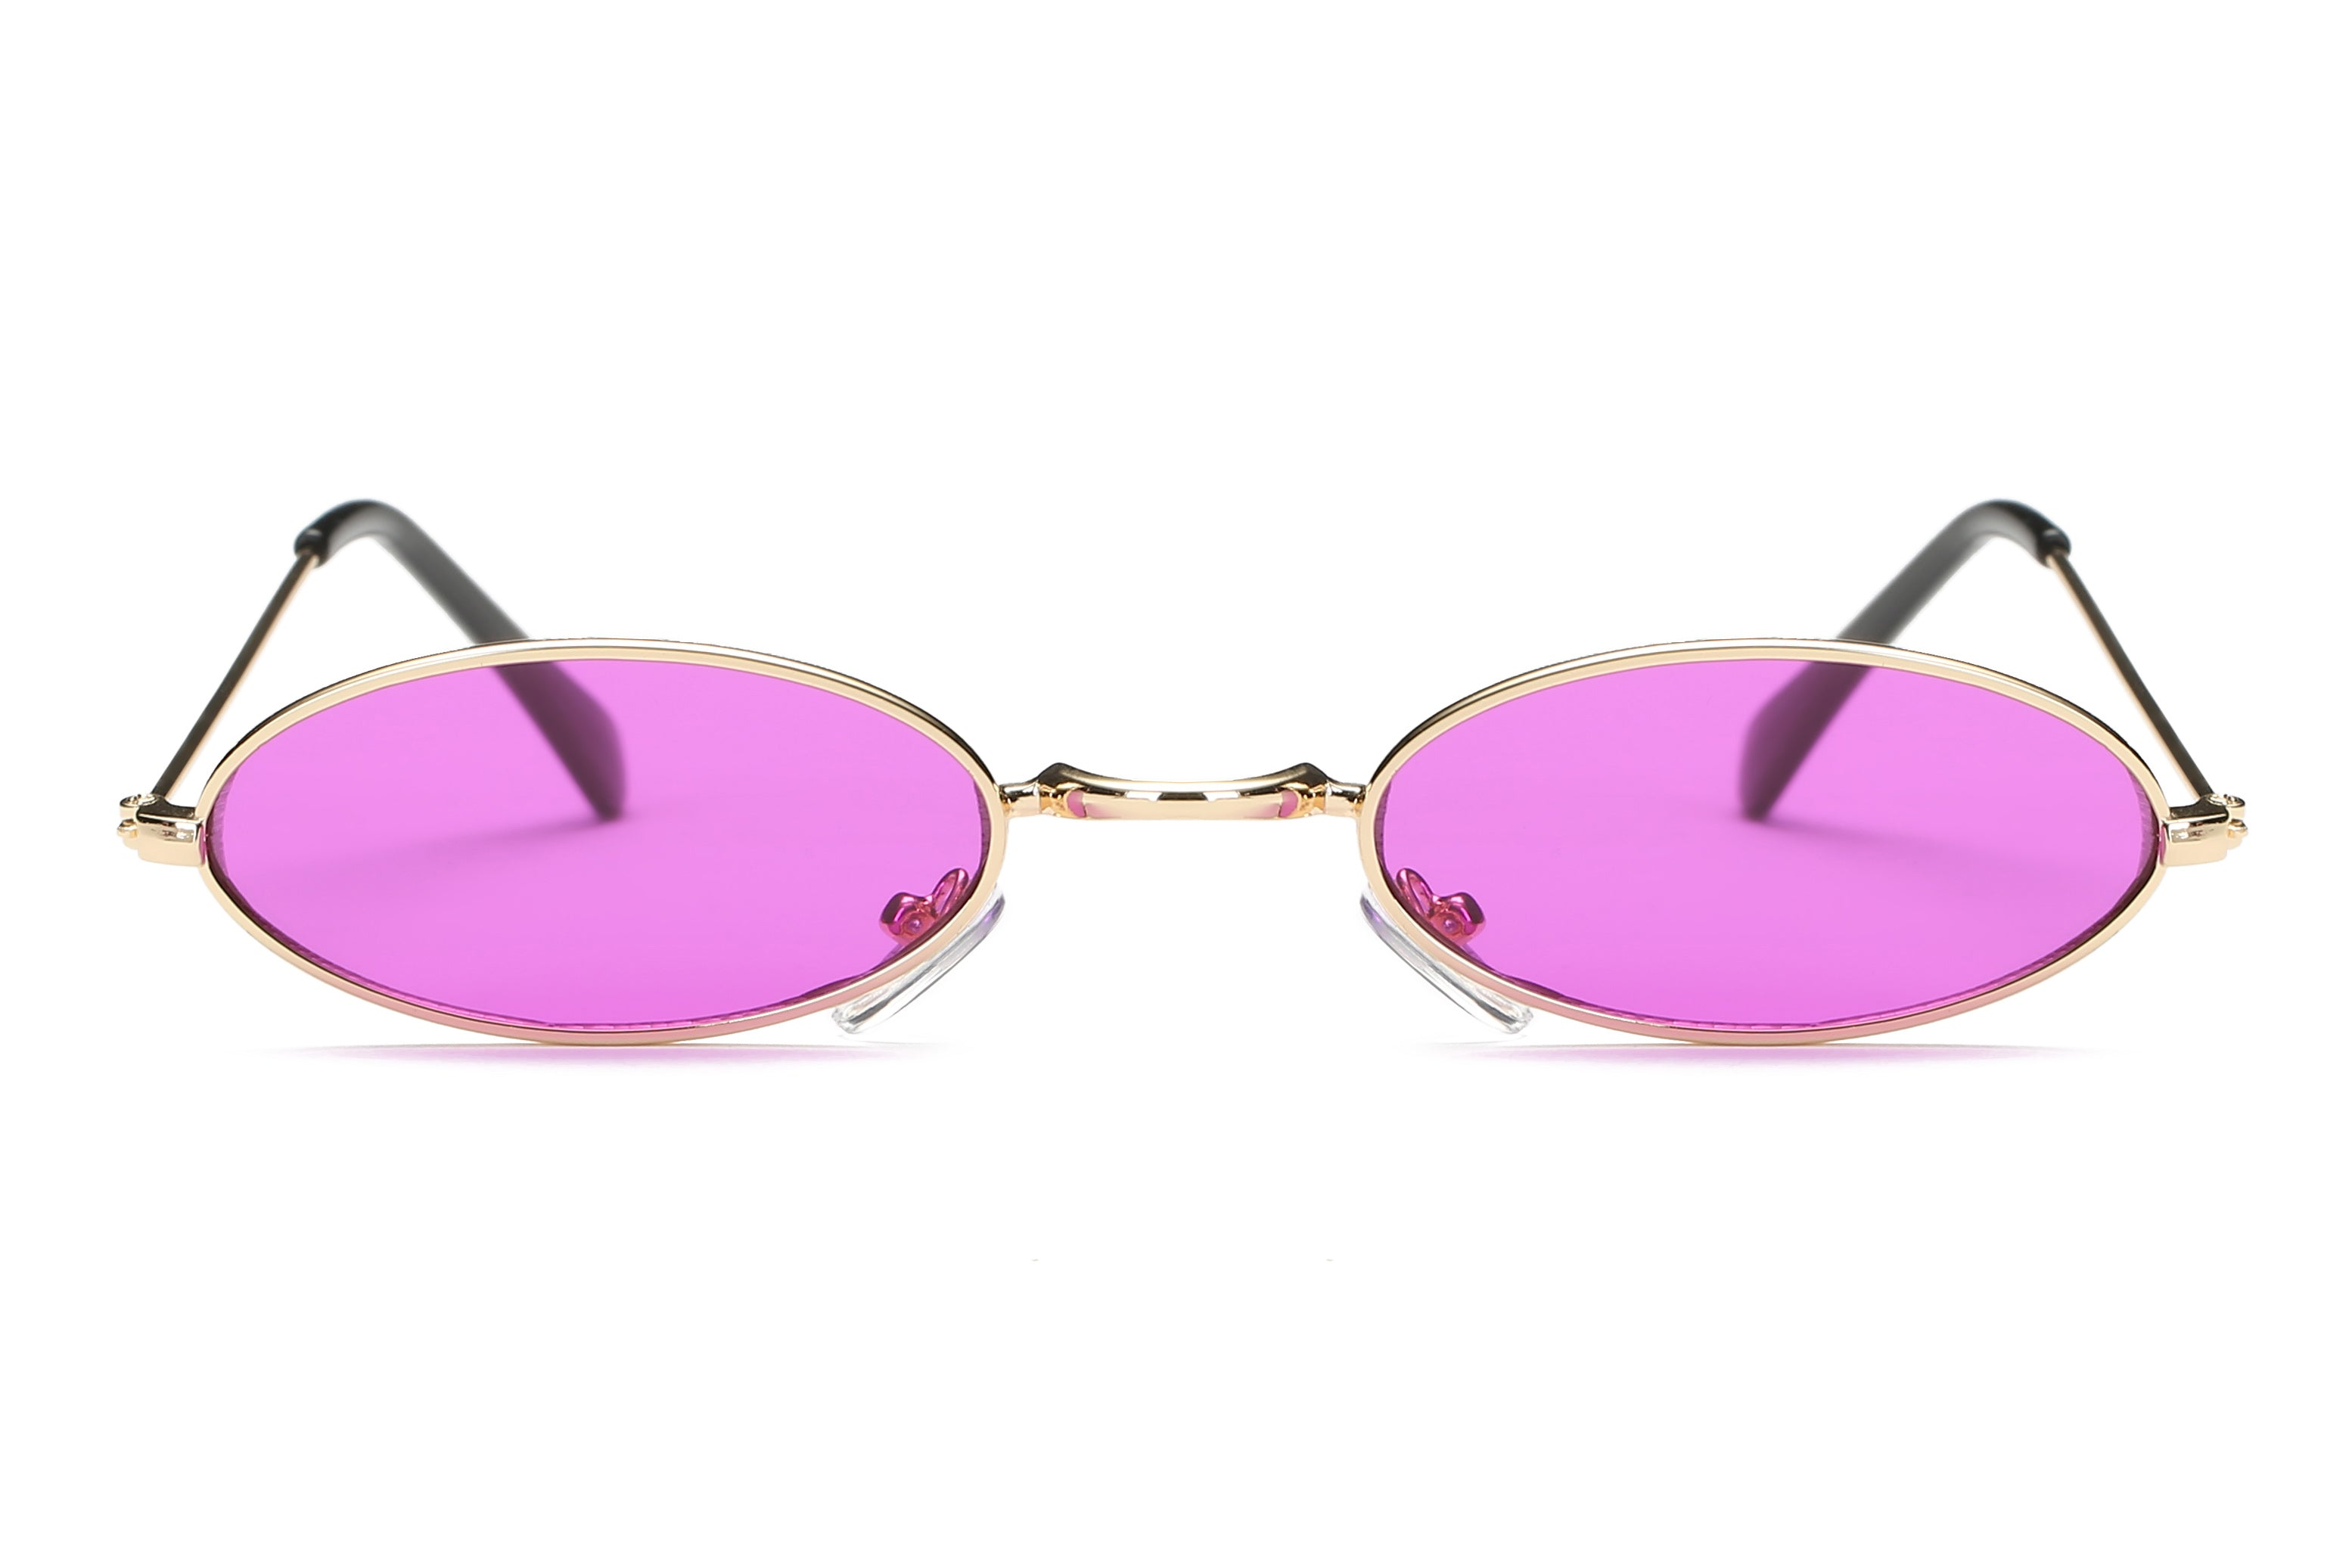 Retro Vintage Small Round Sunglasses for Men and Women - Purple